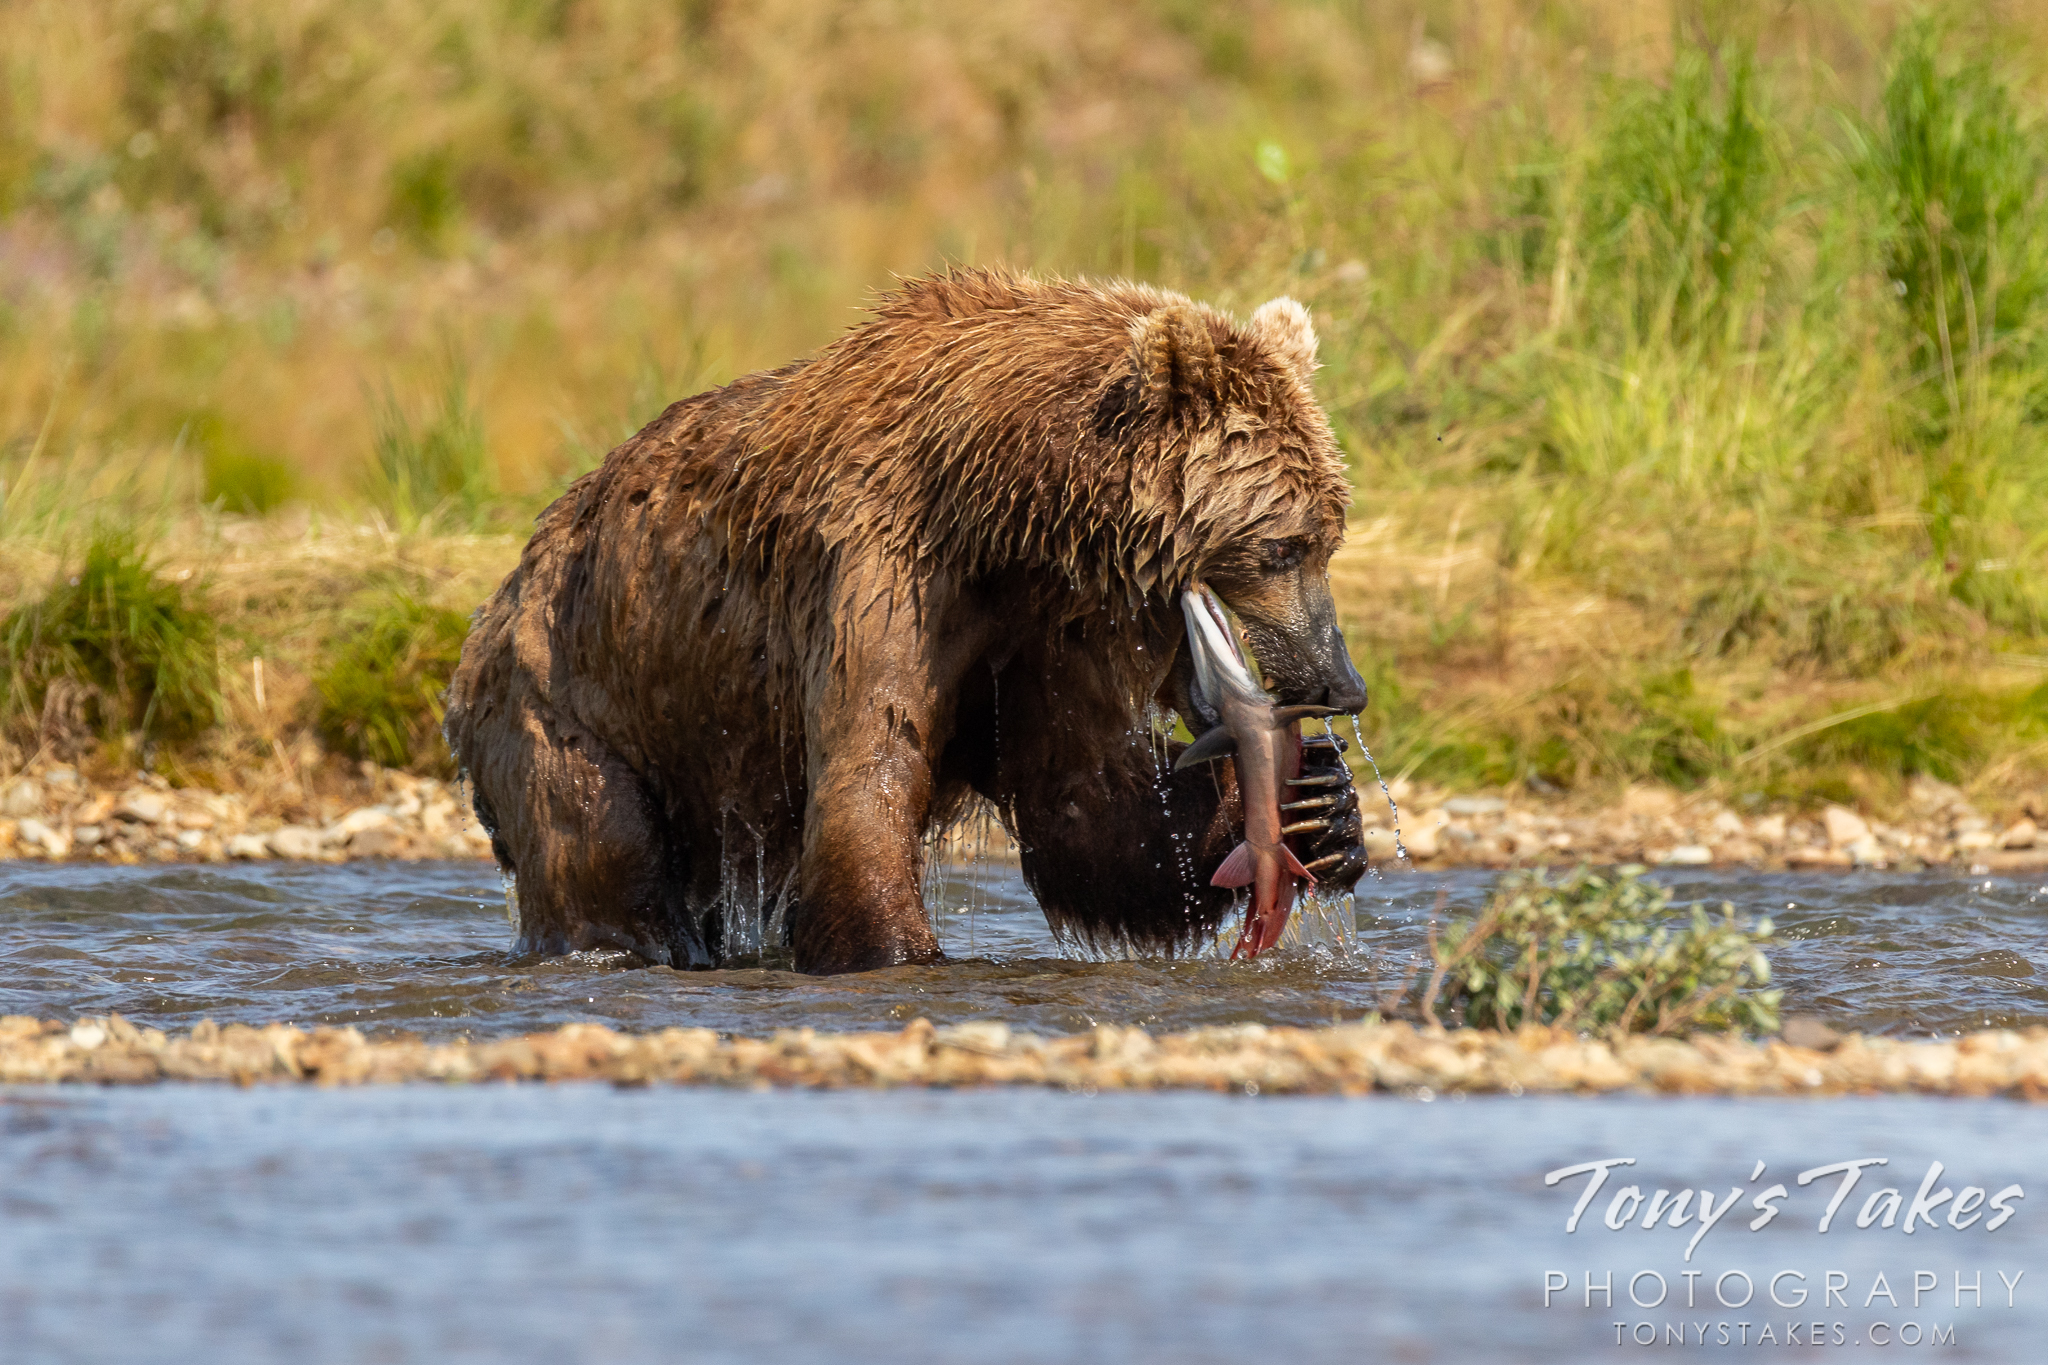 A brown bear gets a grip on a sockeye salmon it caught. (© Tony's Takes)